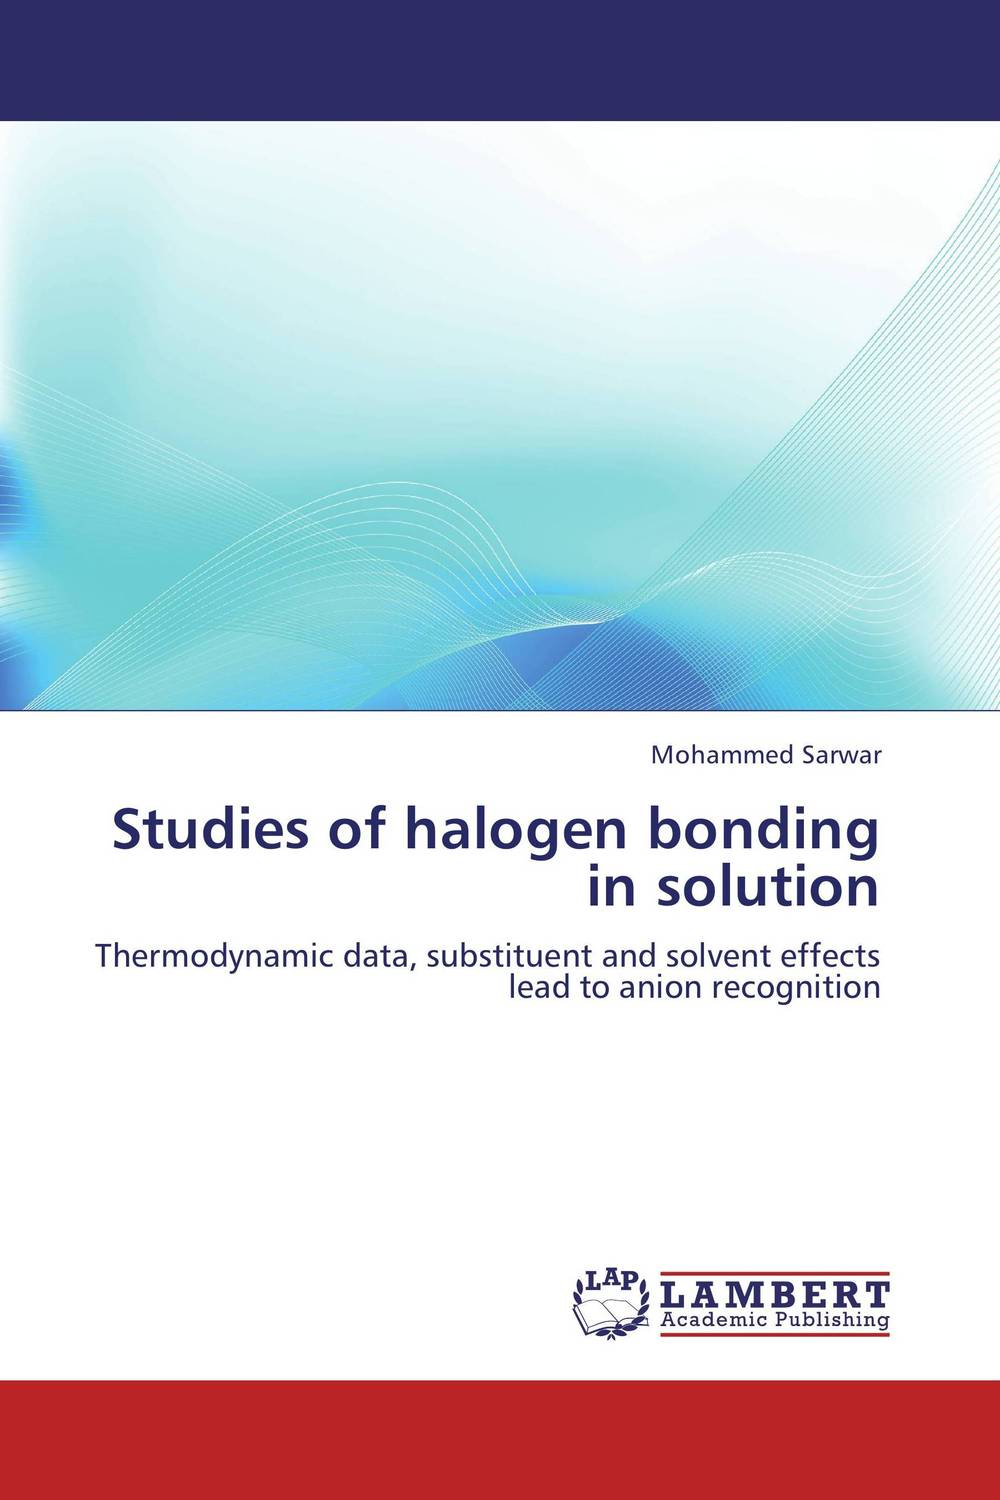 Studies of halogen bonding in solution modified pnas synthesis and interaction studies with dna